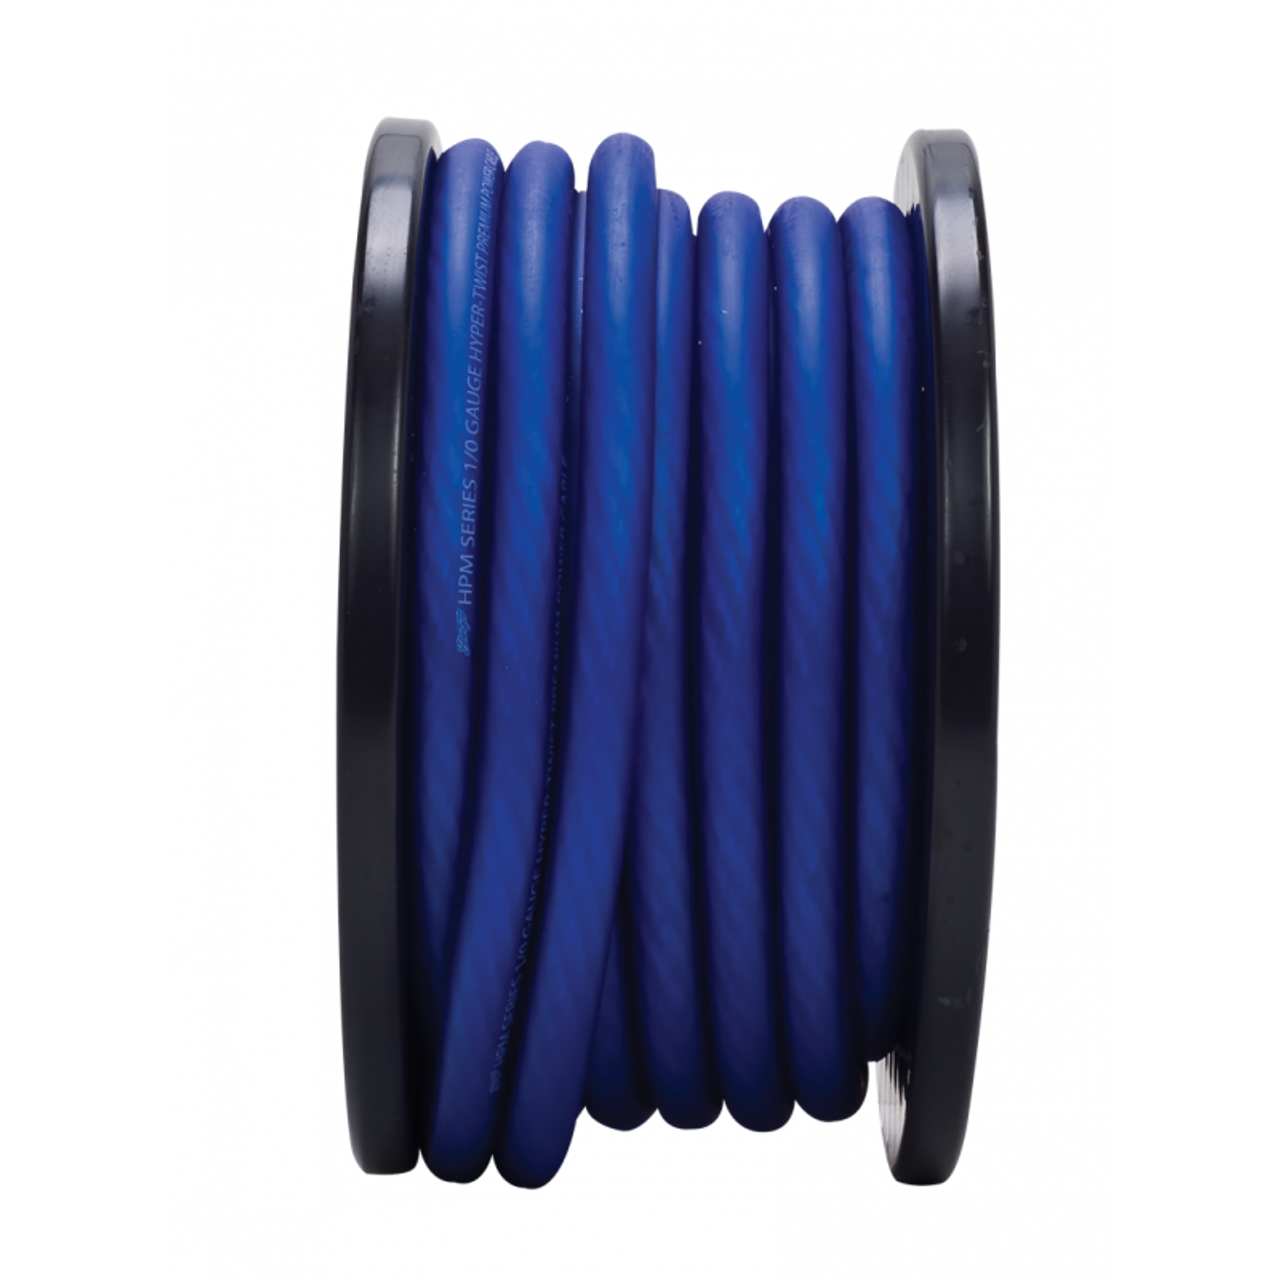 5 ft STINGER HPM SHW10B 1//0 GAUGE POWER GROUND WIRE TRANSLUCENT BLUE JACKET NEW